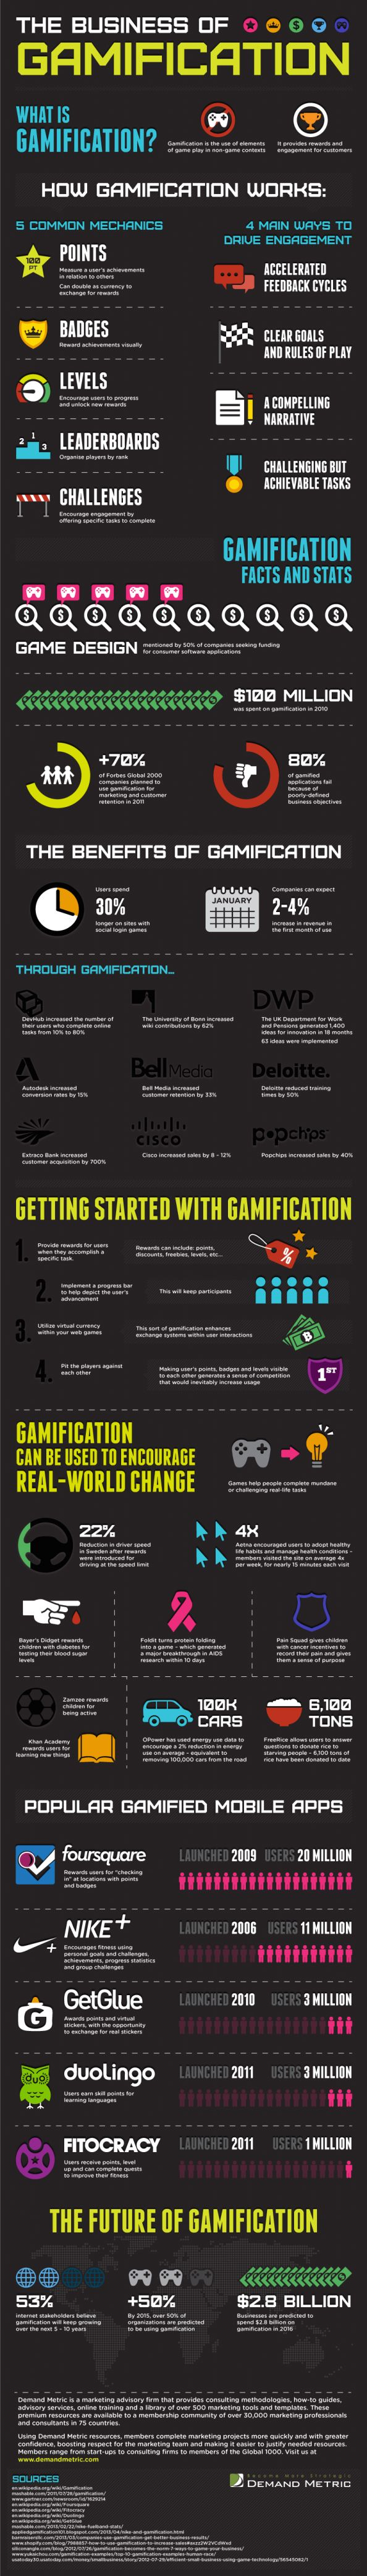 The Business of Gamification Infographic